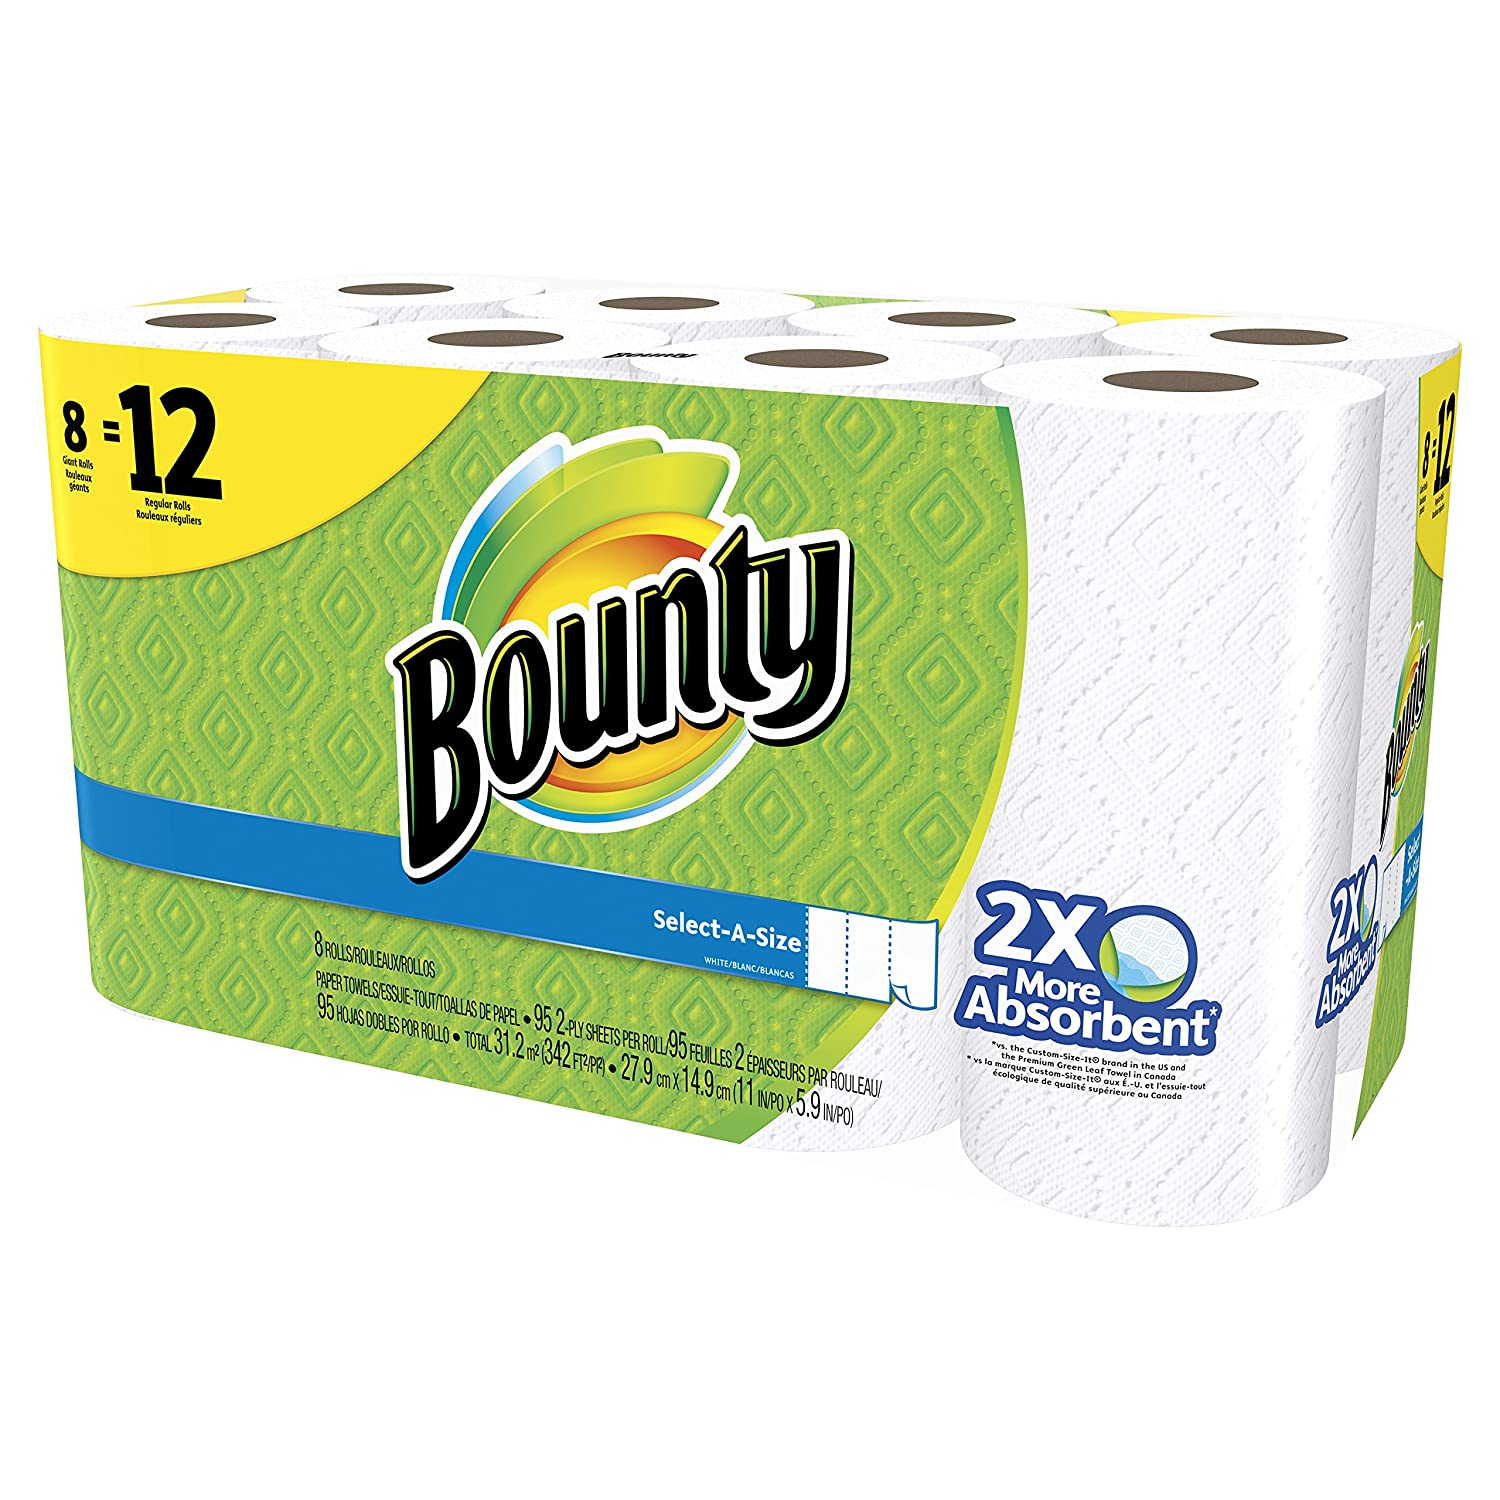 Bounty Select-A-Size Paper Towels, White, Giant Roll - 12 pk by Bounty: Amazon.es: Salud y cuidado personal